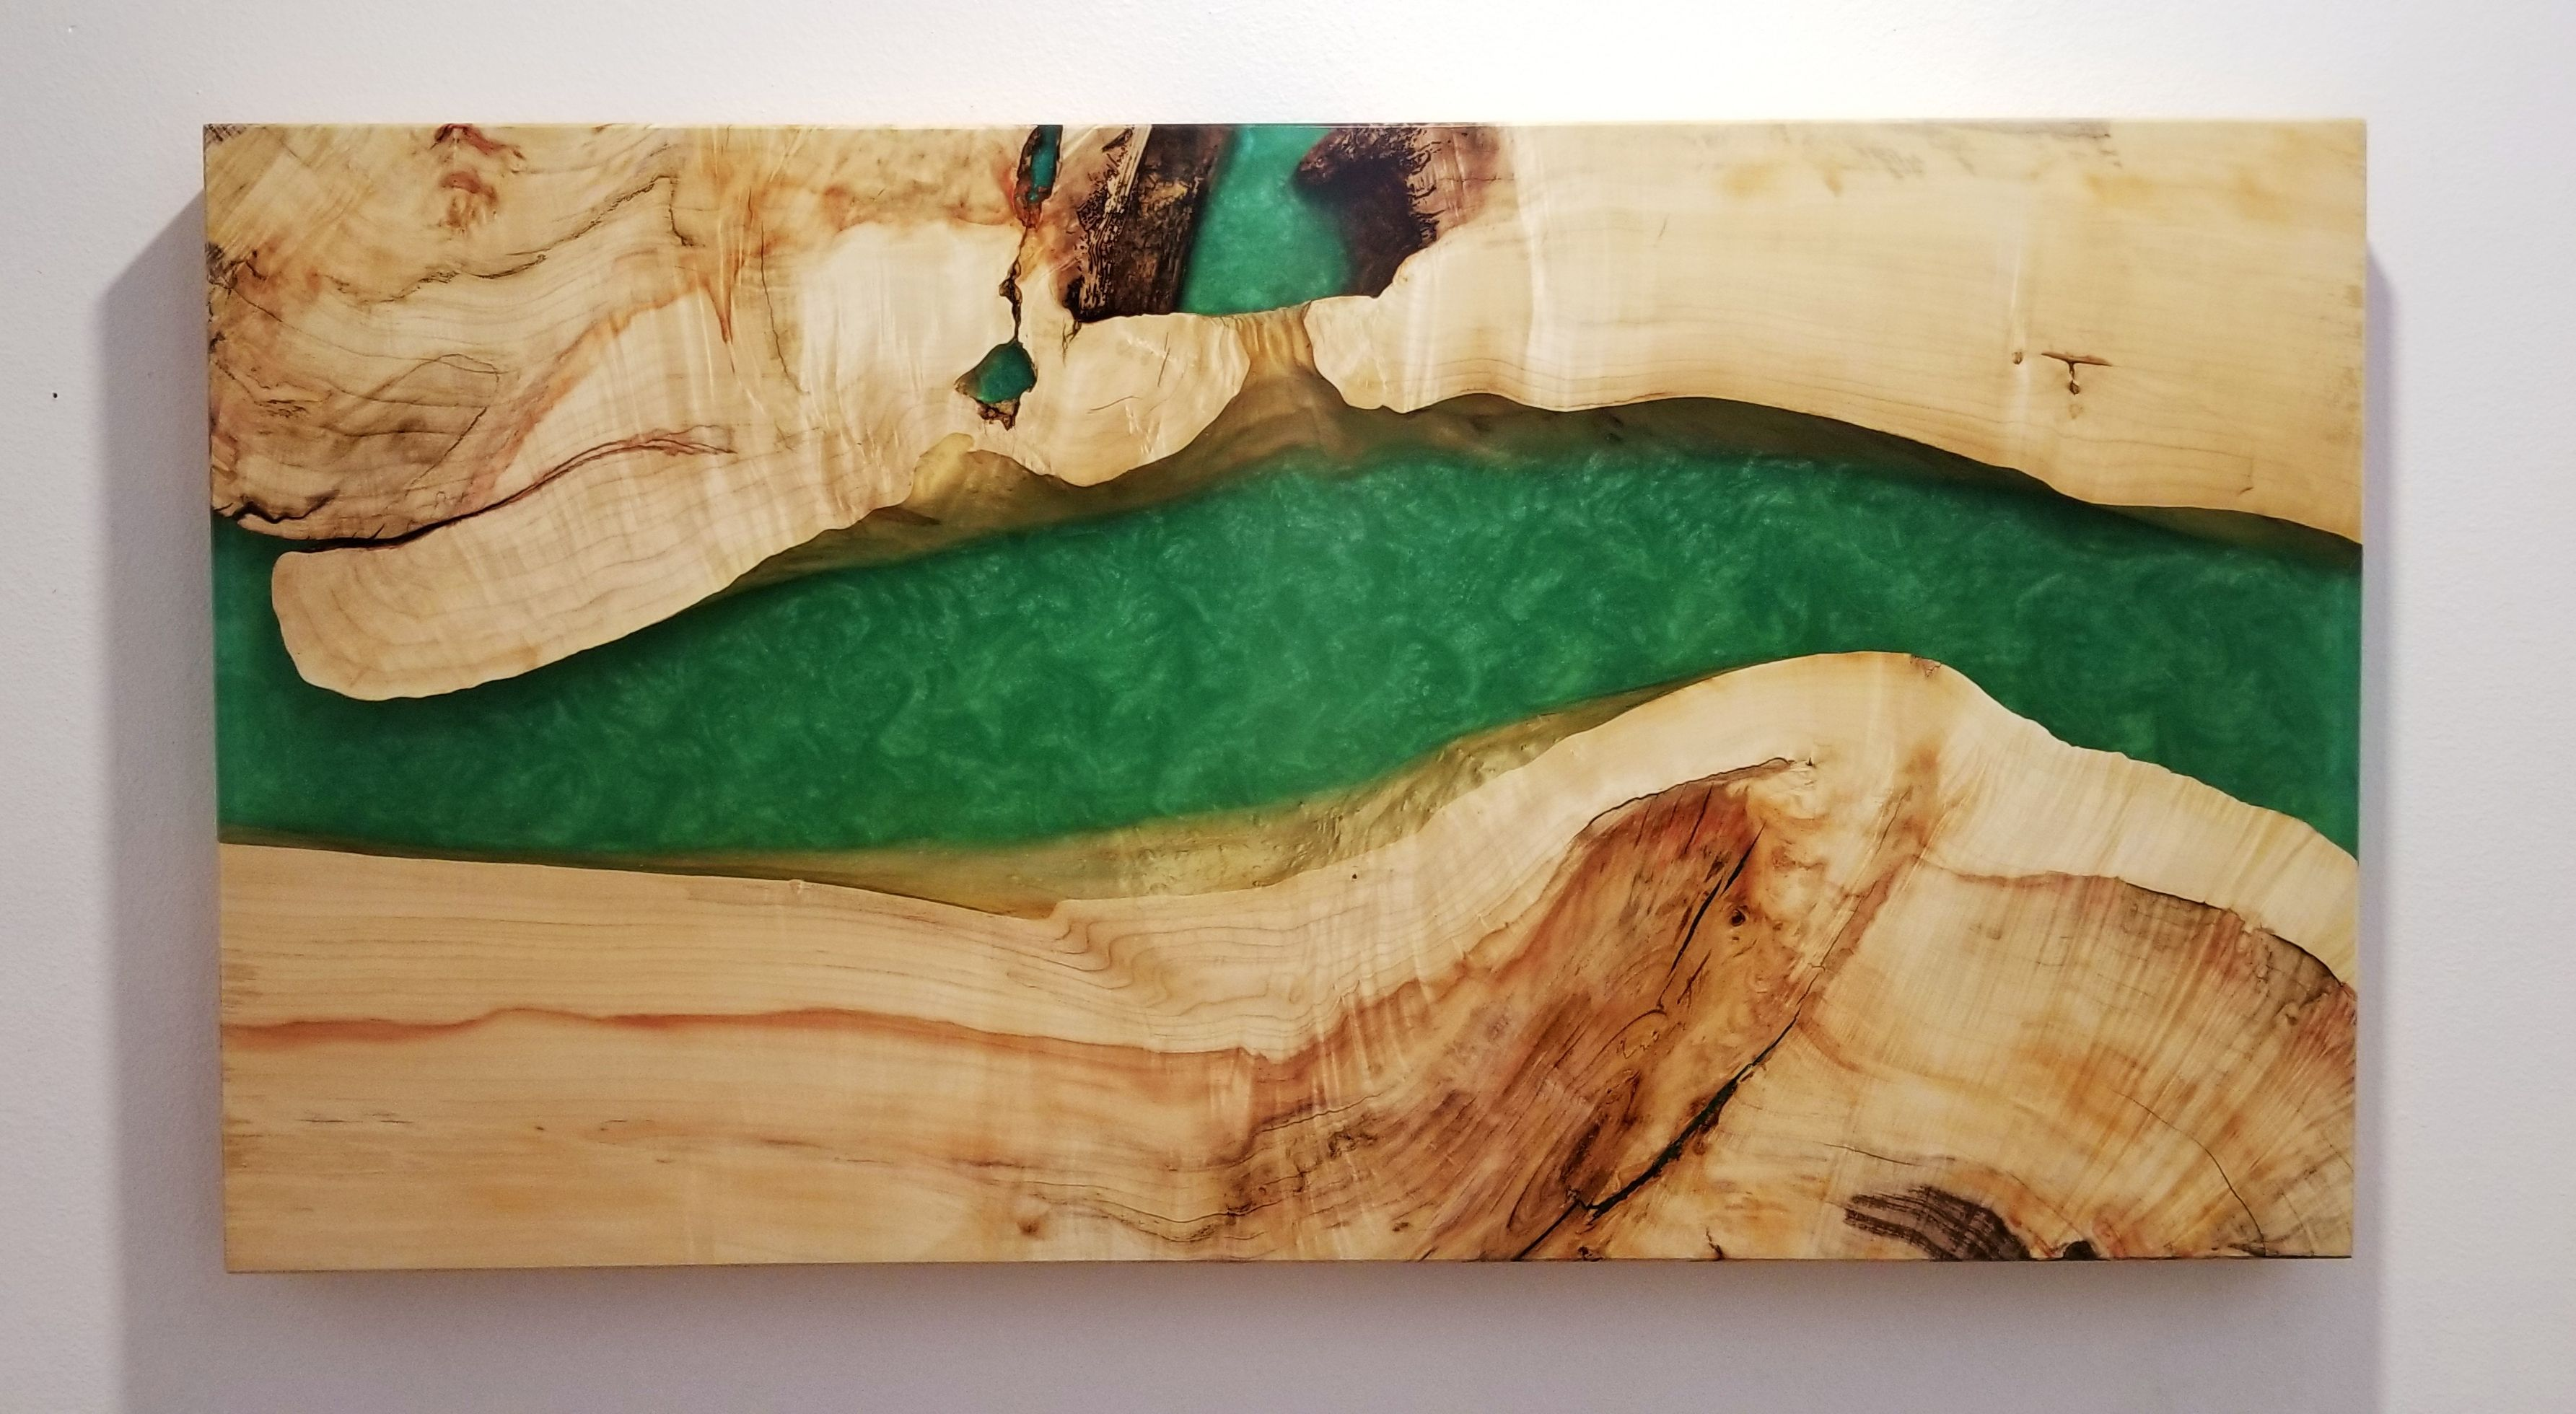 Sold Wood And Epoxy Wall Art Large Live Edge Epoxy River Etsy Resin Wall Art Wooden Wall Hangings Large Wall Art